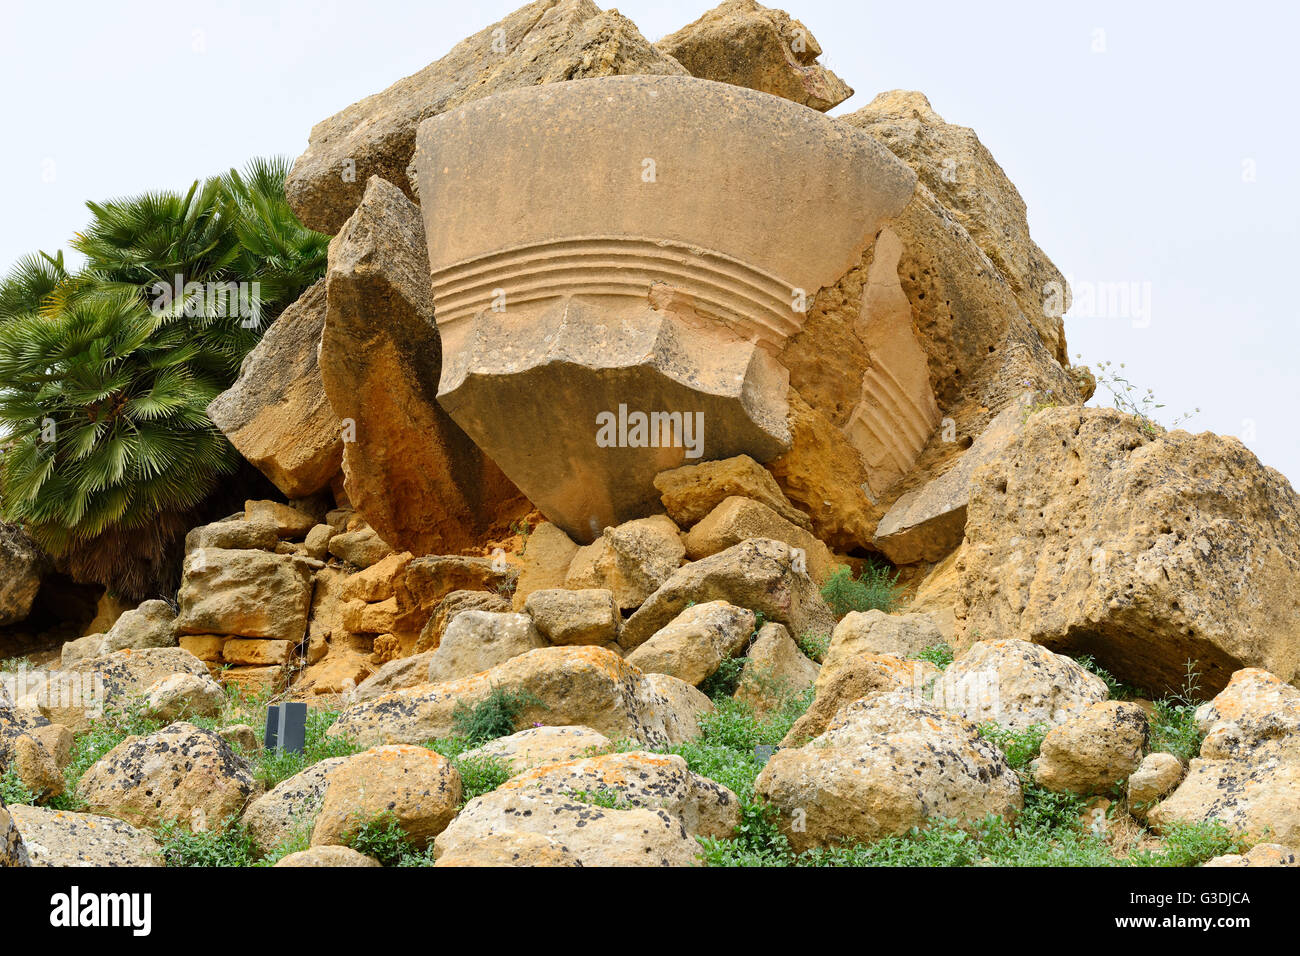 Fallen column capital from Temple of Olympian Zeus in Valley of the Temples (Valle dei Templi), Agrigento, Sicily, - Stock Image